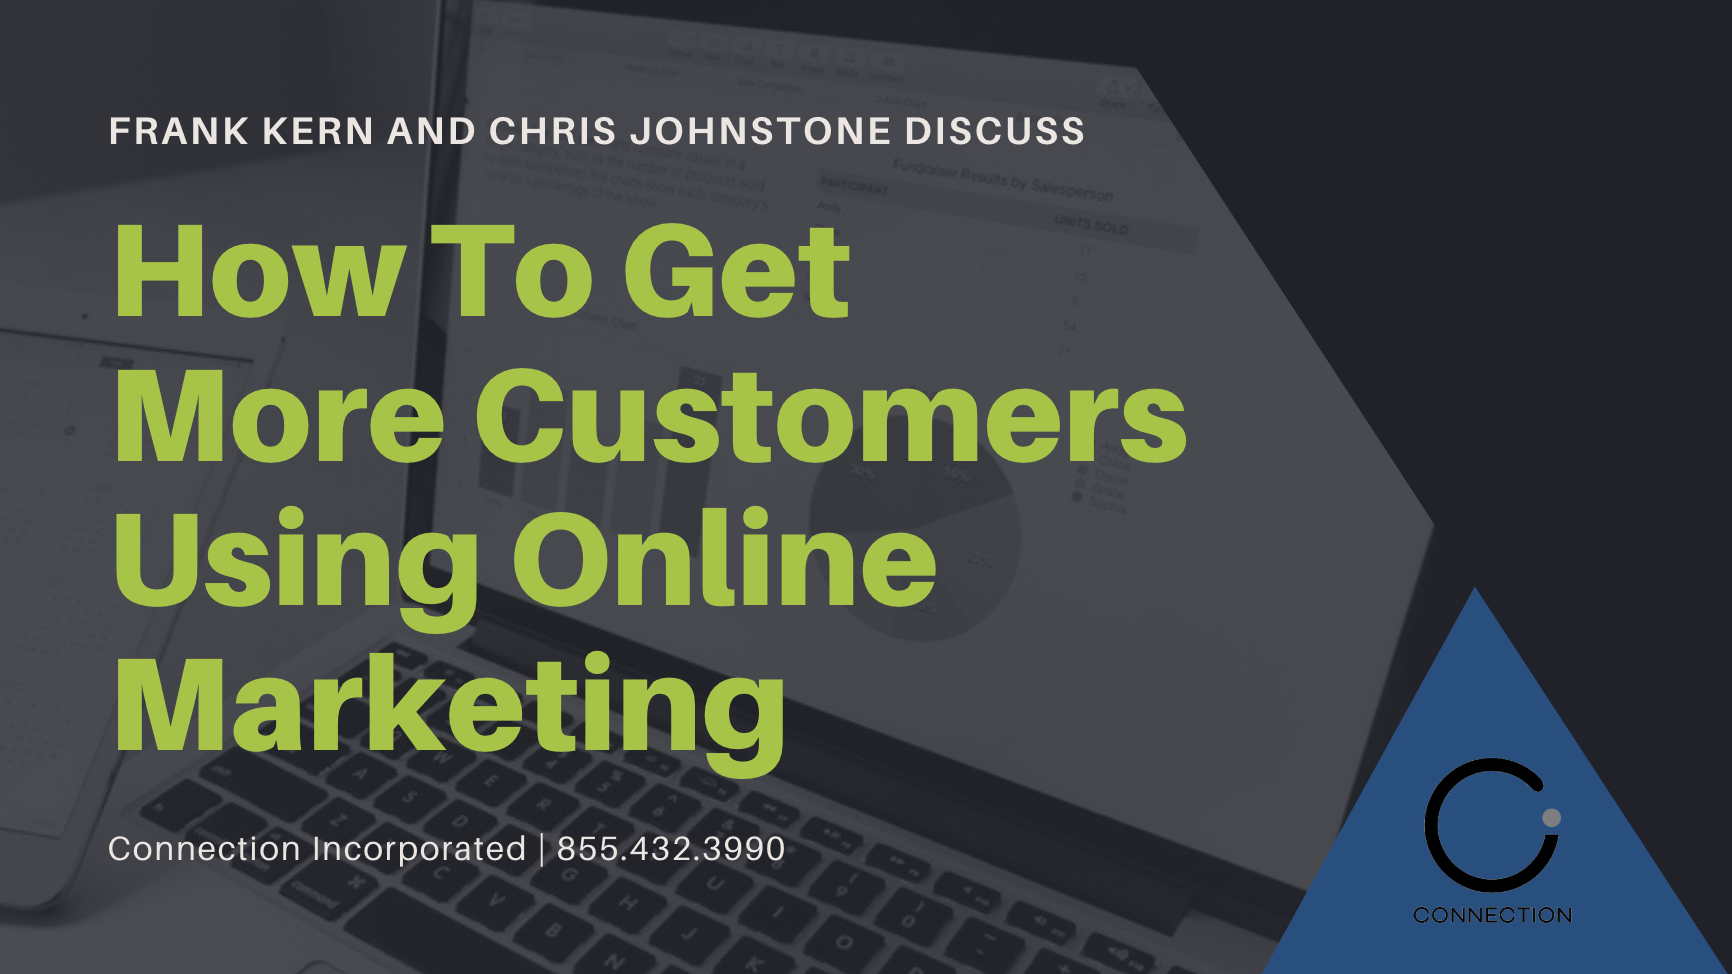 Frank Kern and Chris Johnstone Discuss How To Get More Customers Using Online Marketing